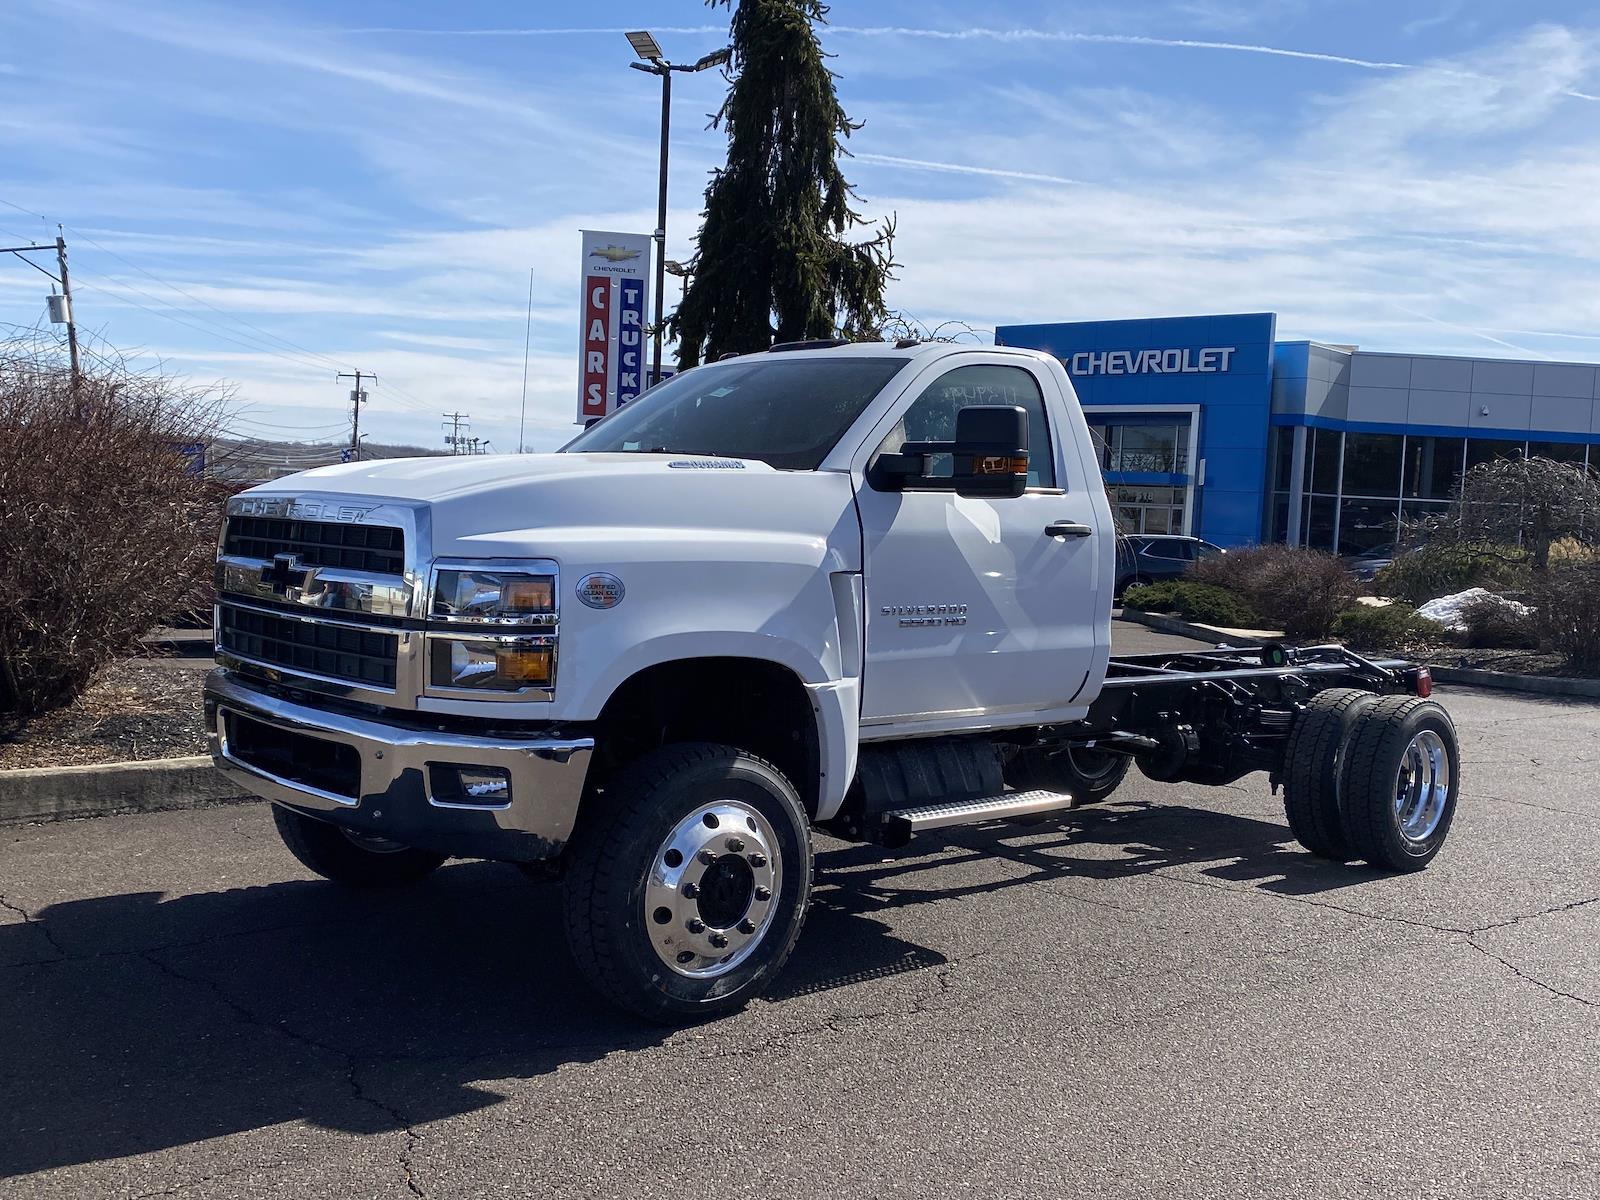 2021 Chevrolet Silverado 5500 Regular Cab DRW 4x4, Cab Chassis #1360R - photo 3